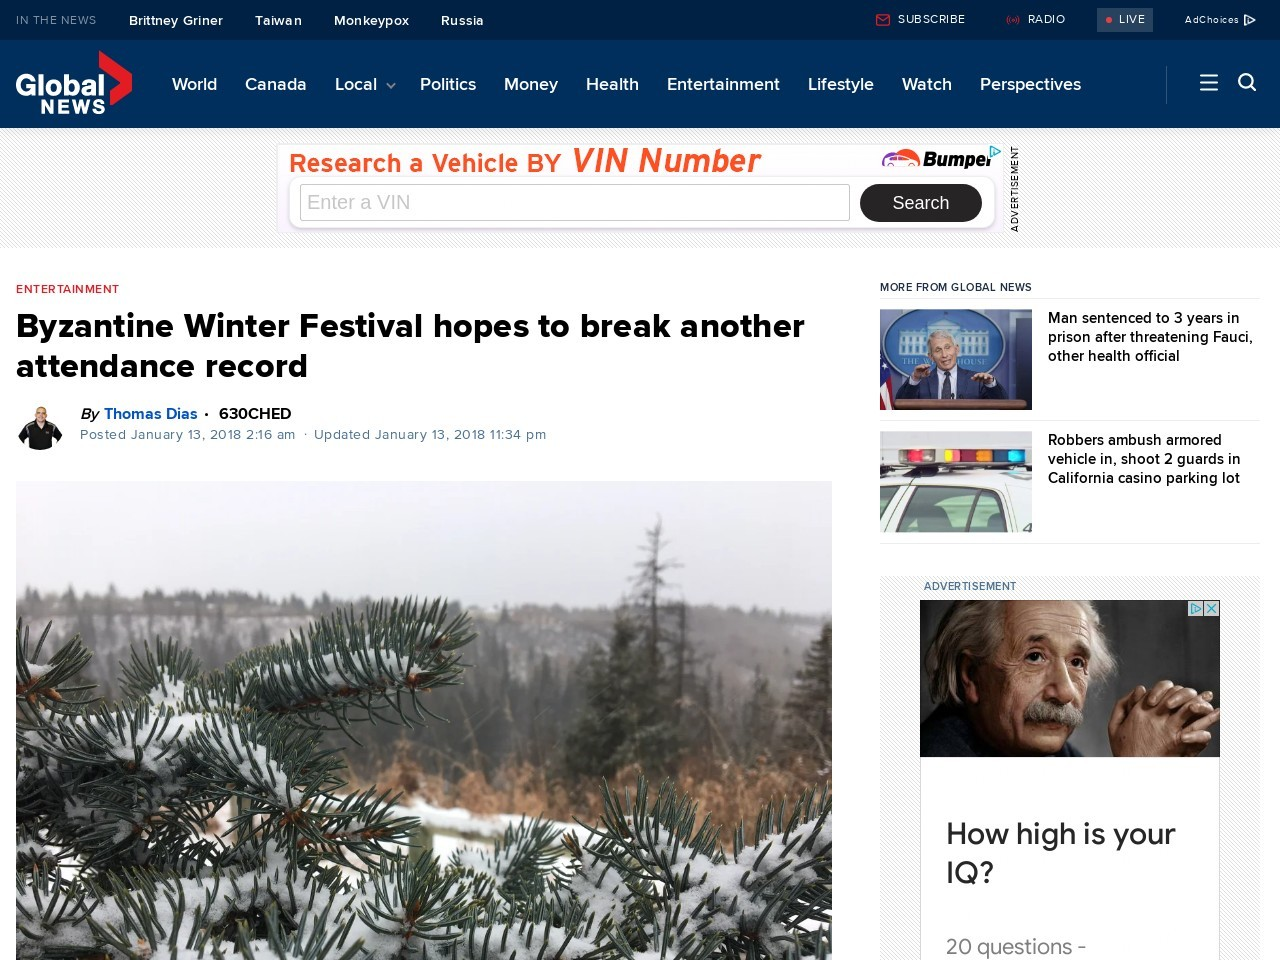 Byzantine Winter Festival hopes to break another attendance record